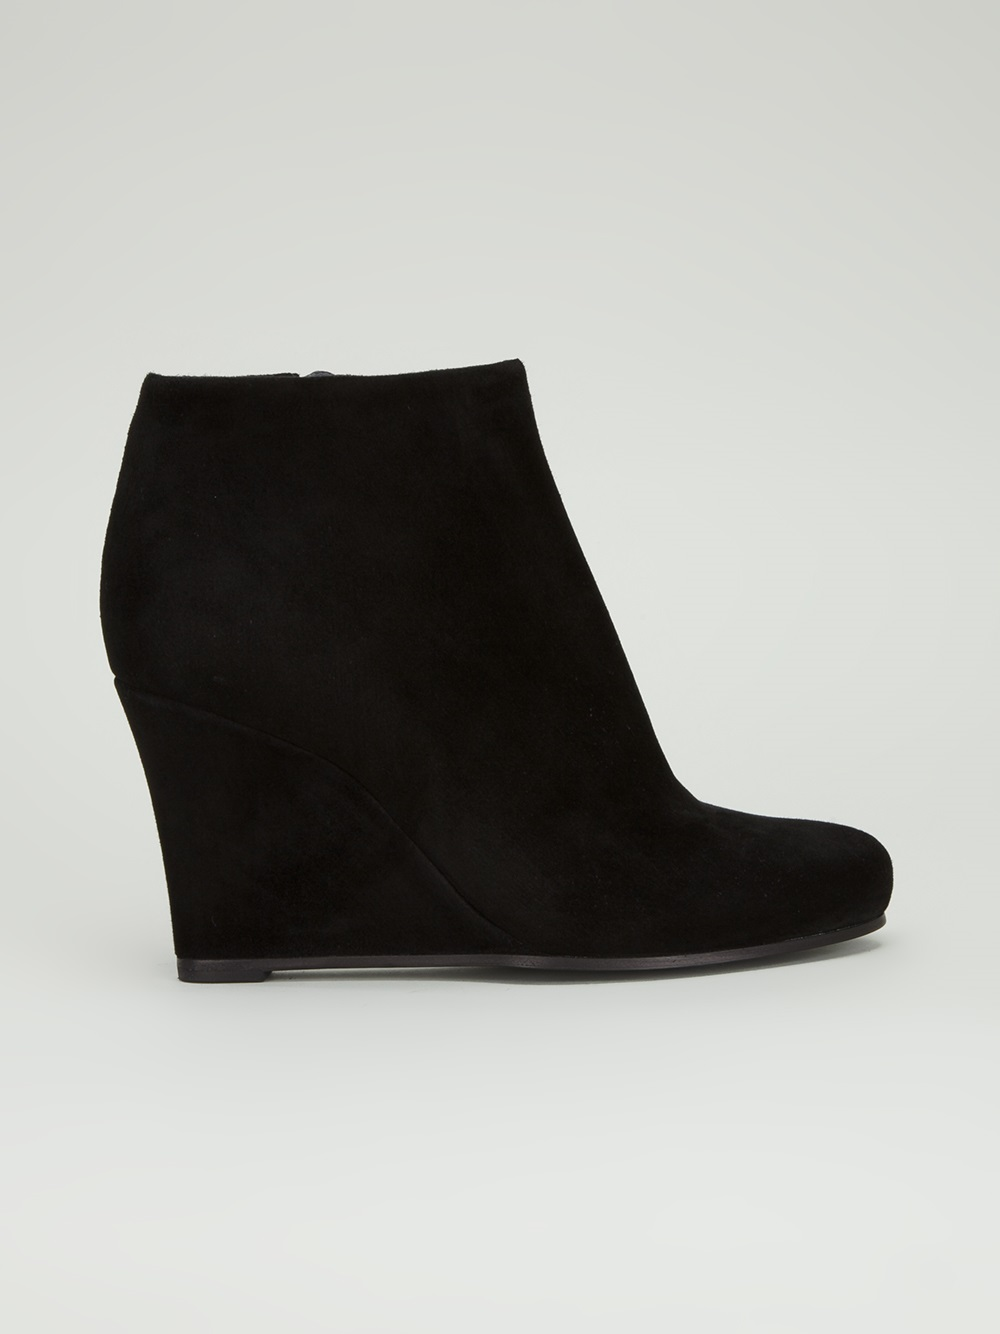 Jil sander Wedge Ankle Boot in Black | Lyst